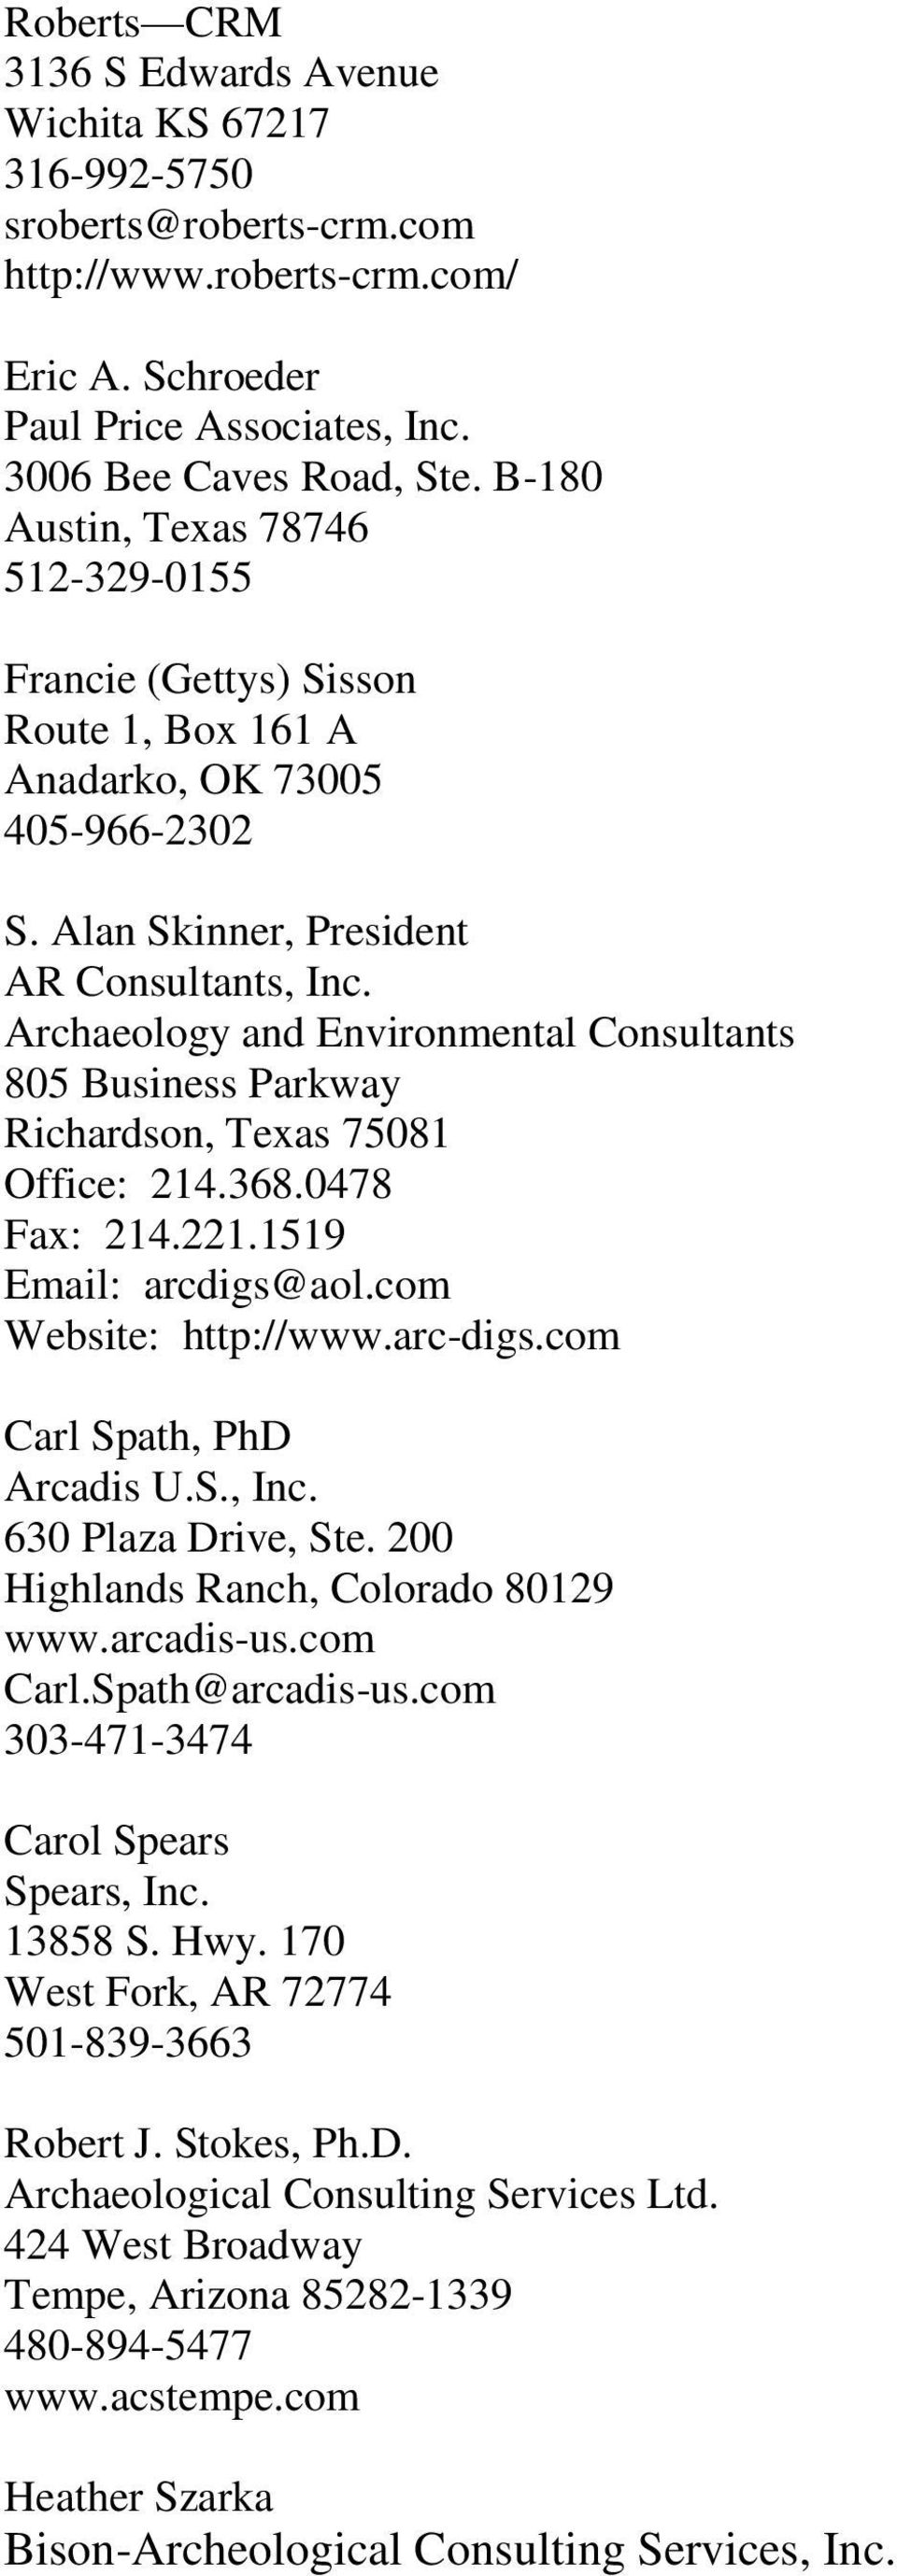 Archaeology and Environmental Consultants 805 Business Parkway Richardson, Texas 75081 Office: 214.368.0478 Fax: 214.221.1519 Email: arcdigs@aol.com Website: http://www.arc-digs.